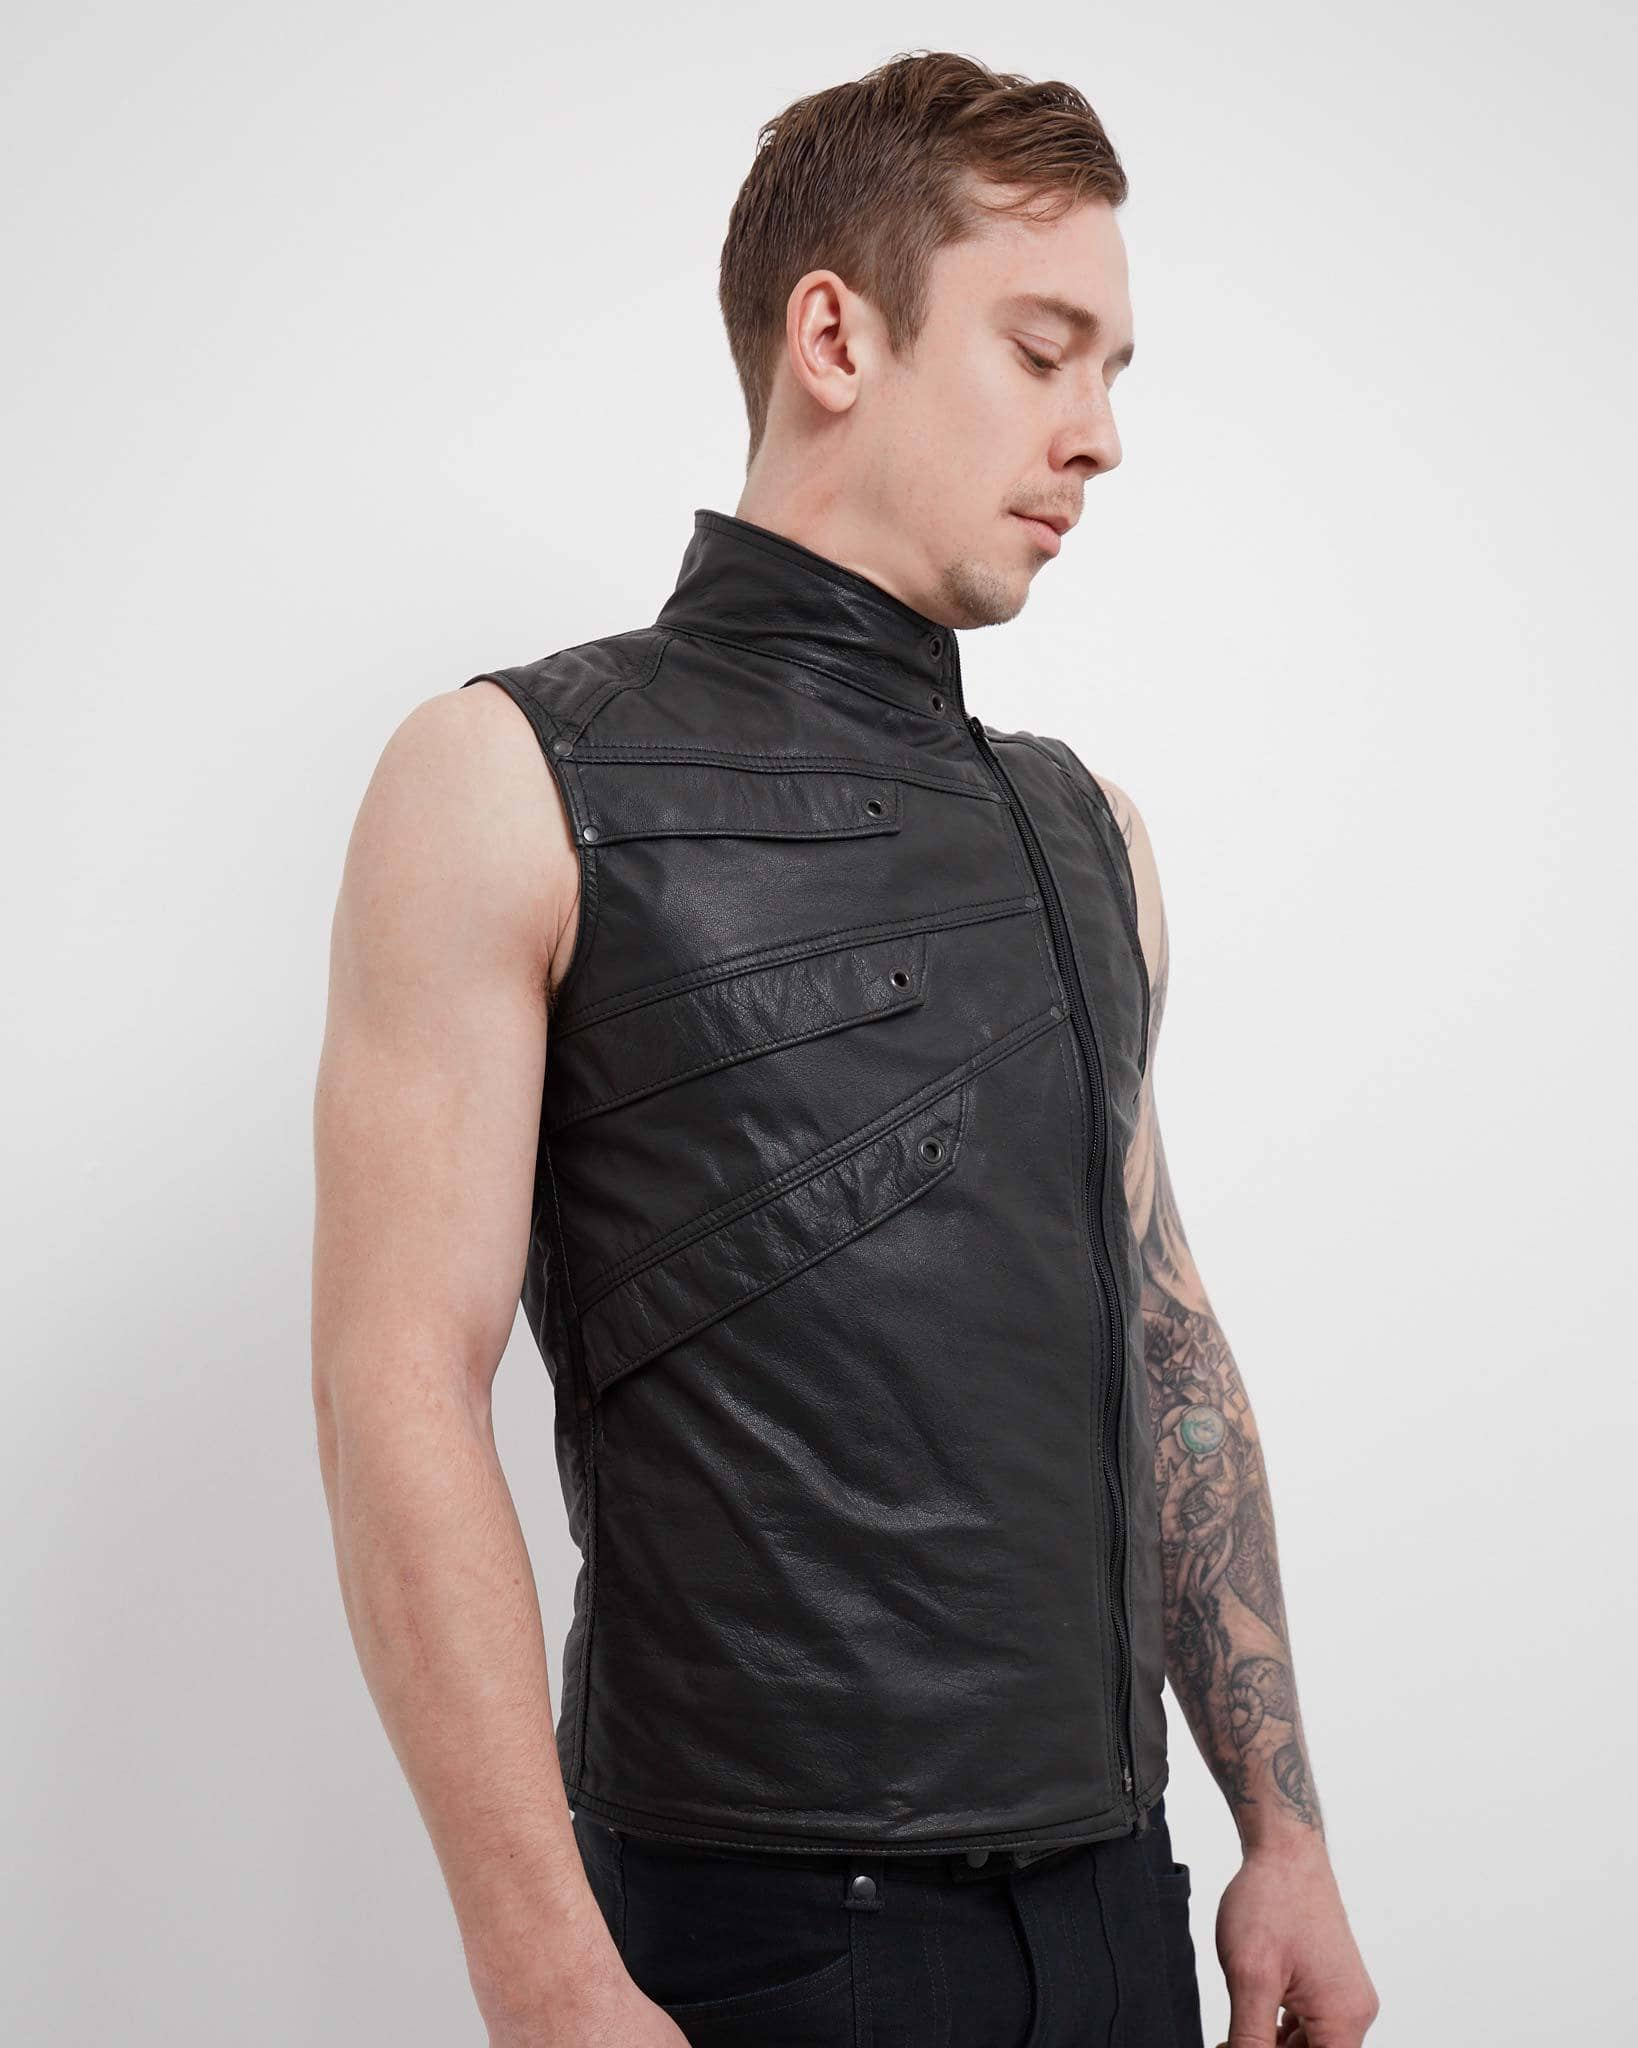 Leather Sidewinder Vest - Crisiswear Clothing